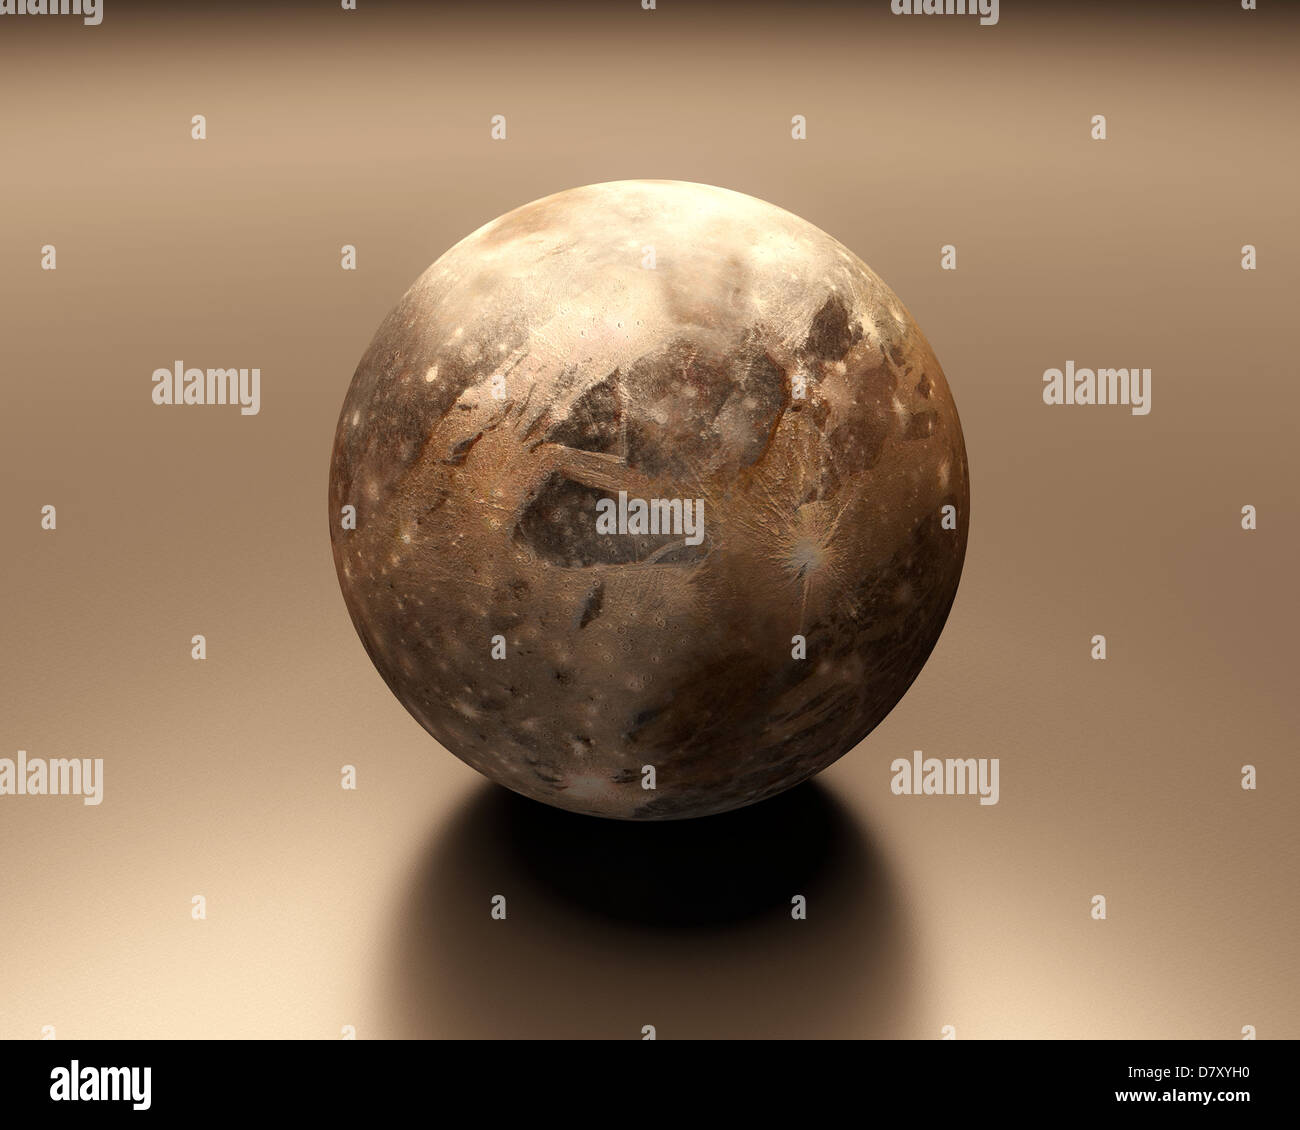 A rendered Image of the Jupiter Moon Ganymede. - Stock Image